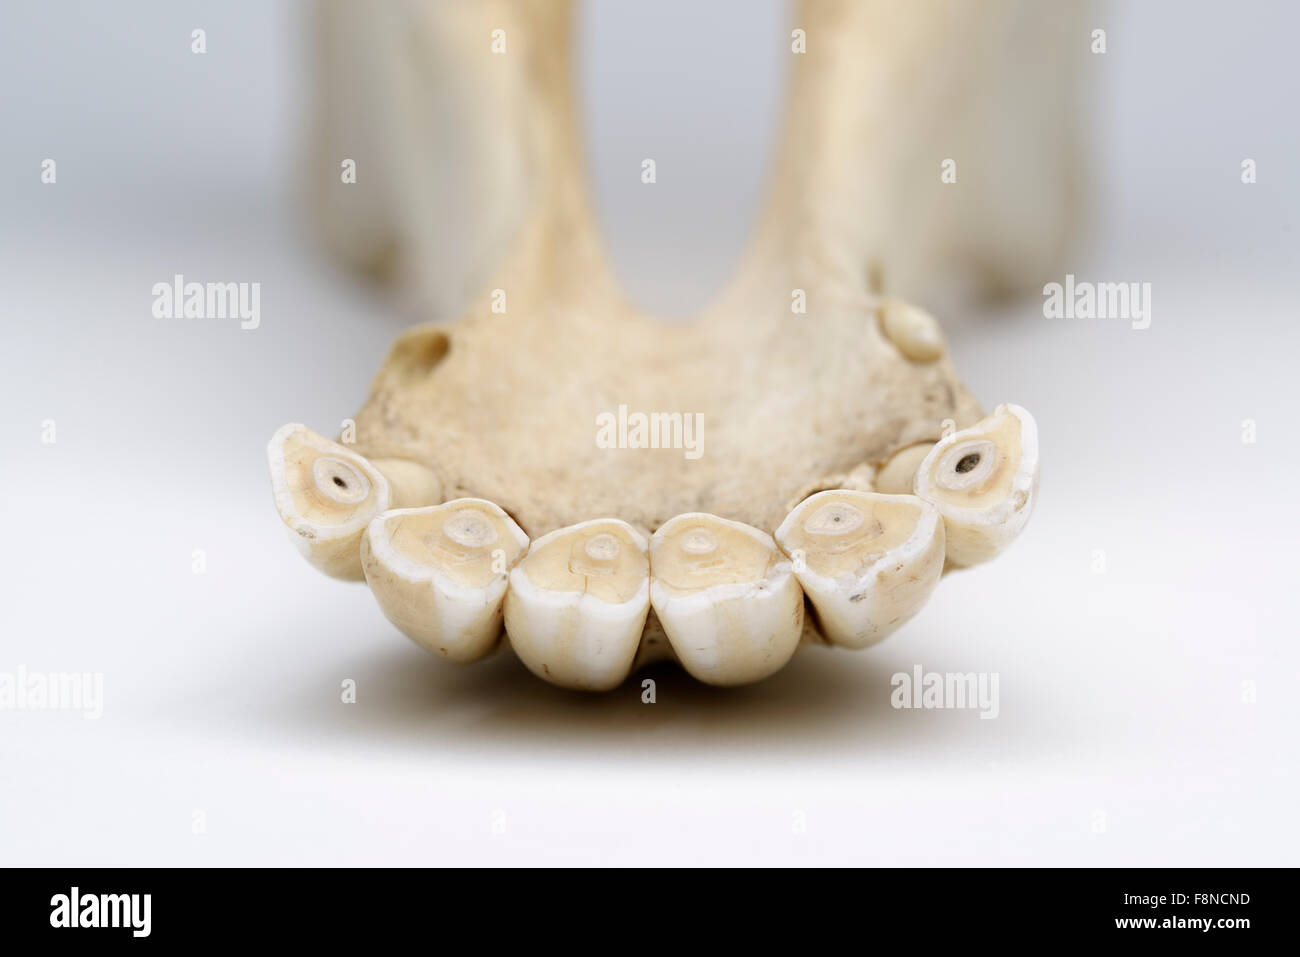 Incisors Stock Photos & Incisors Stock Images - Alamy